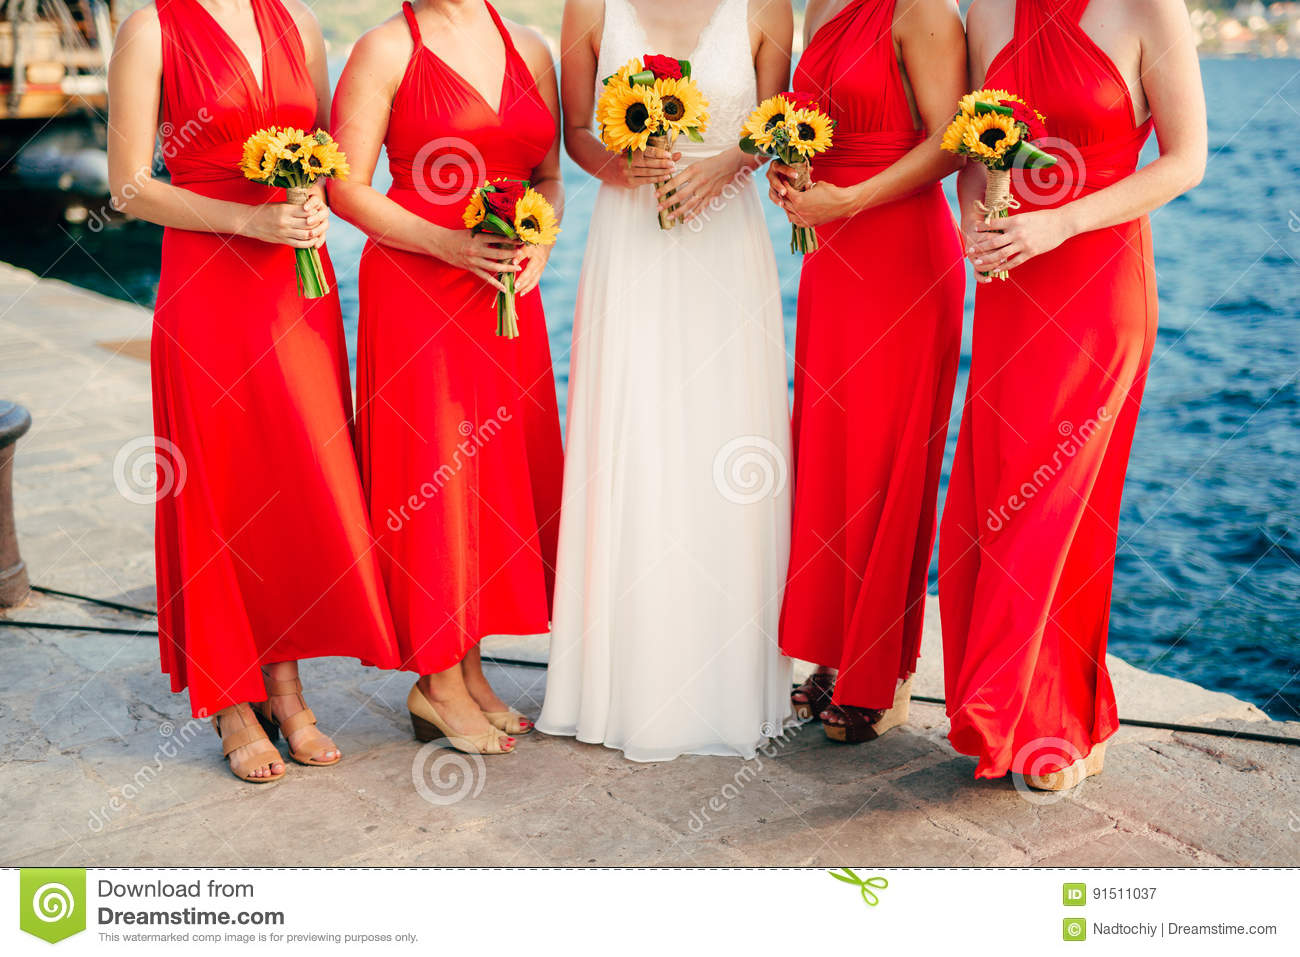 Bridesmaids in red dresses, in hands bouquets of sunflowers. Wed